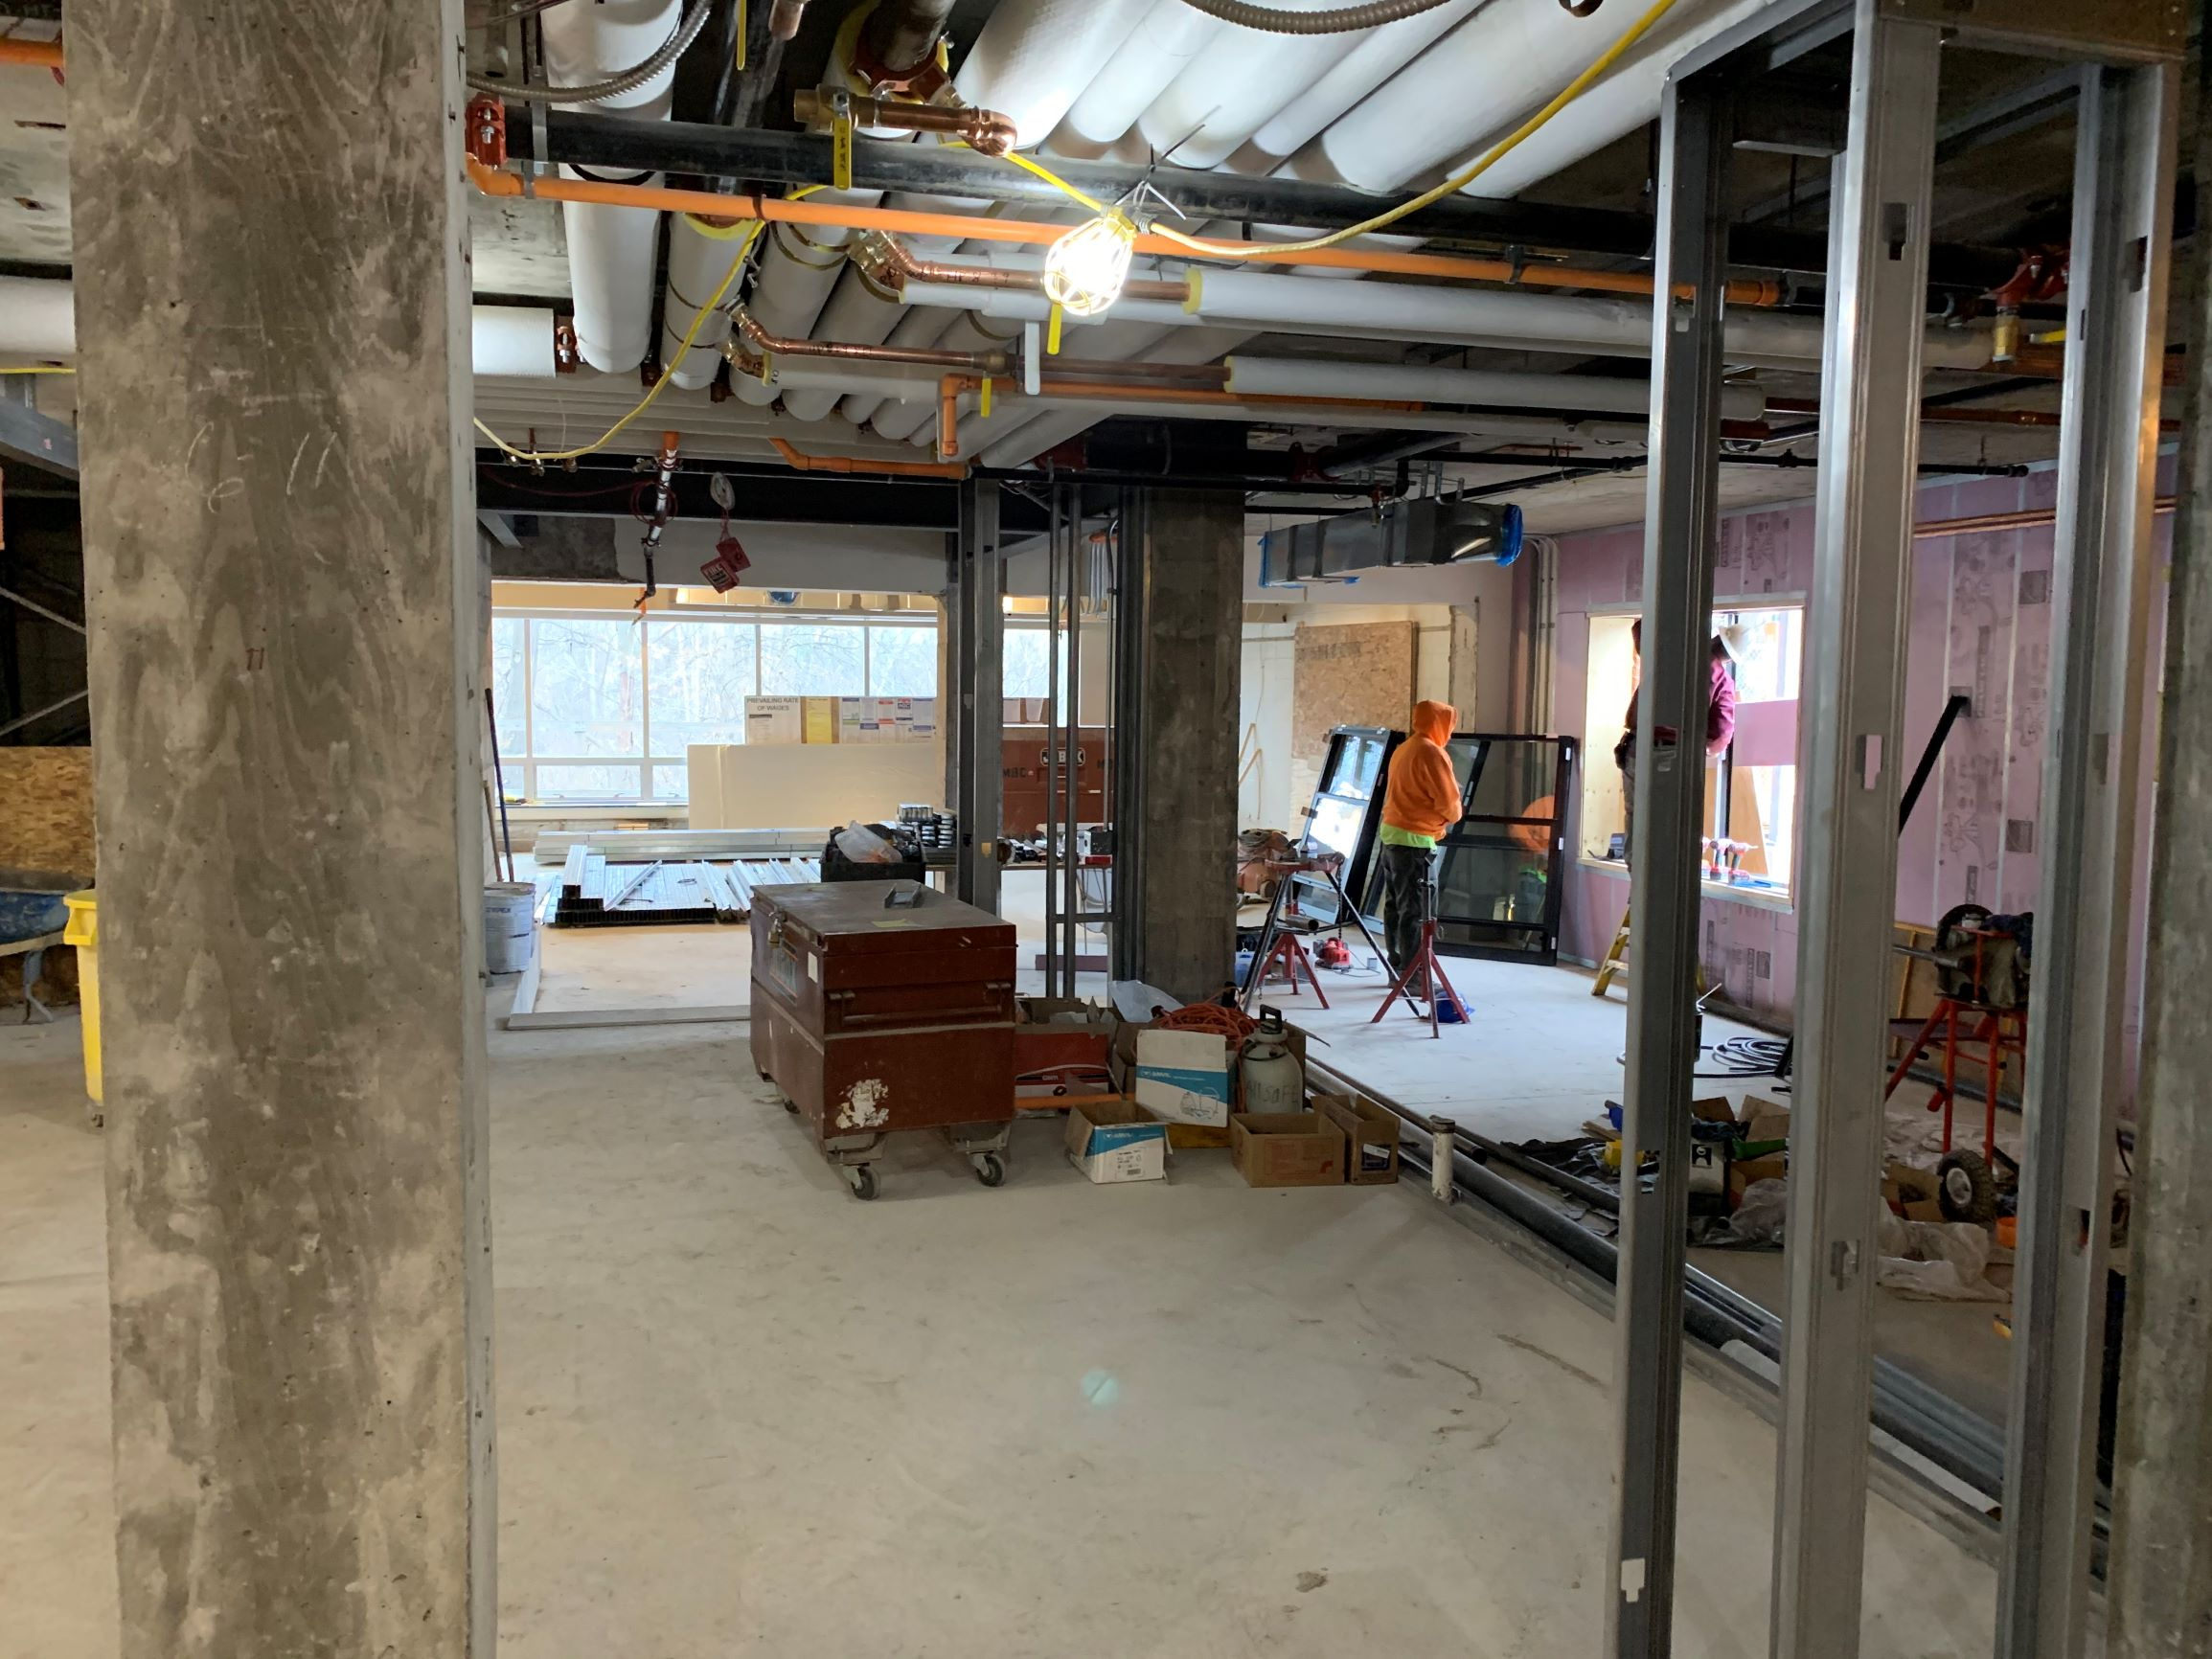 Kent Hall Renovation Dec 2019, Interior